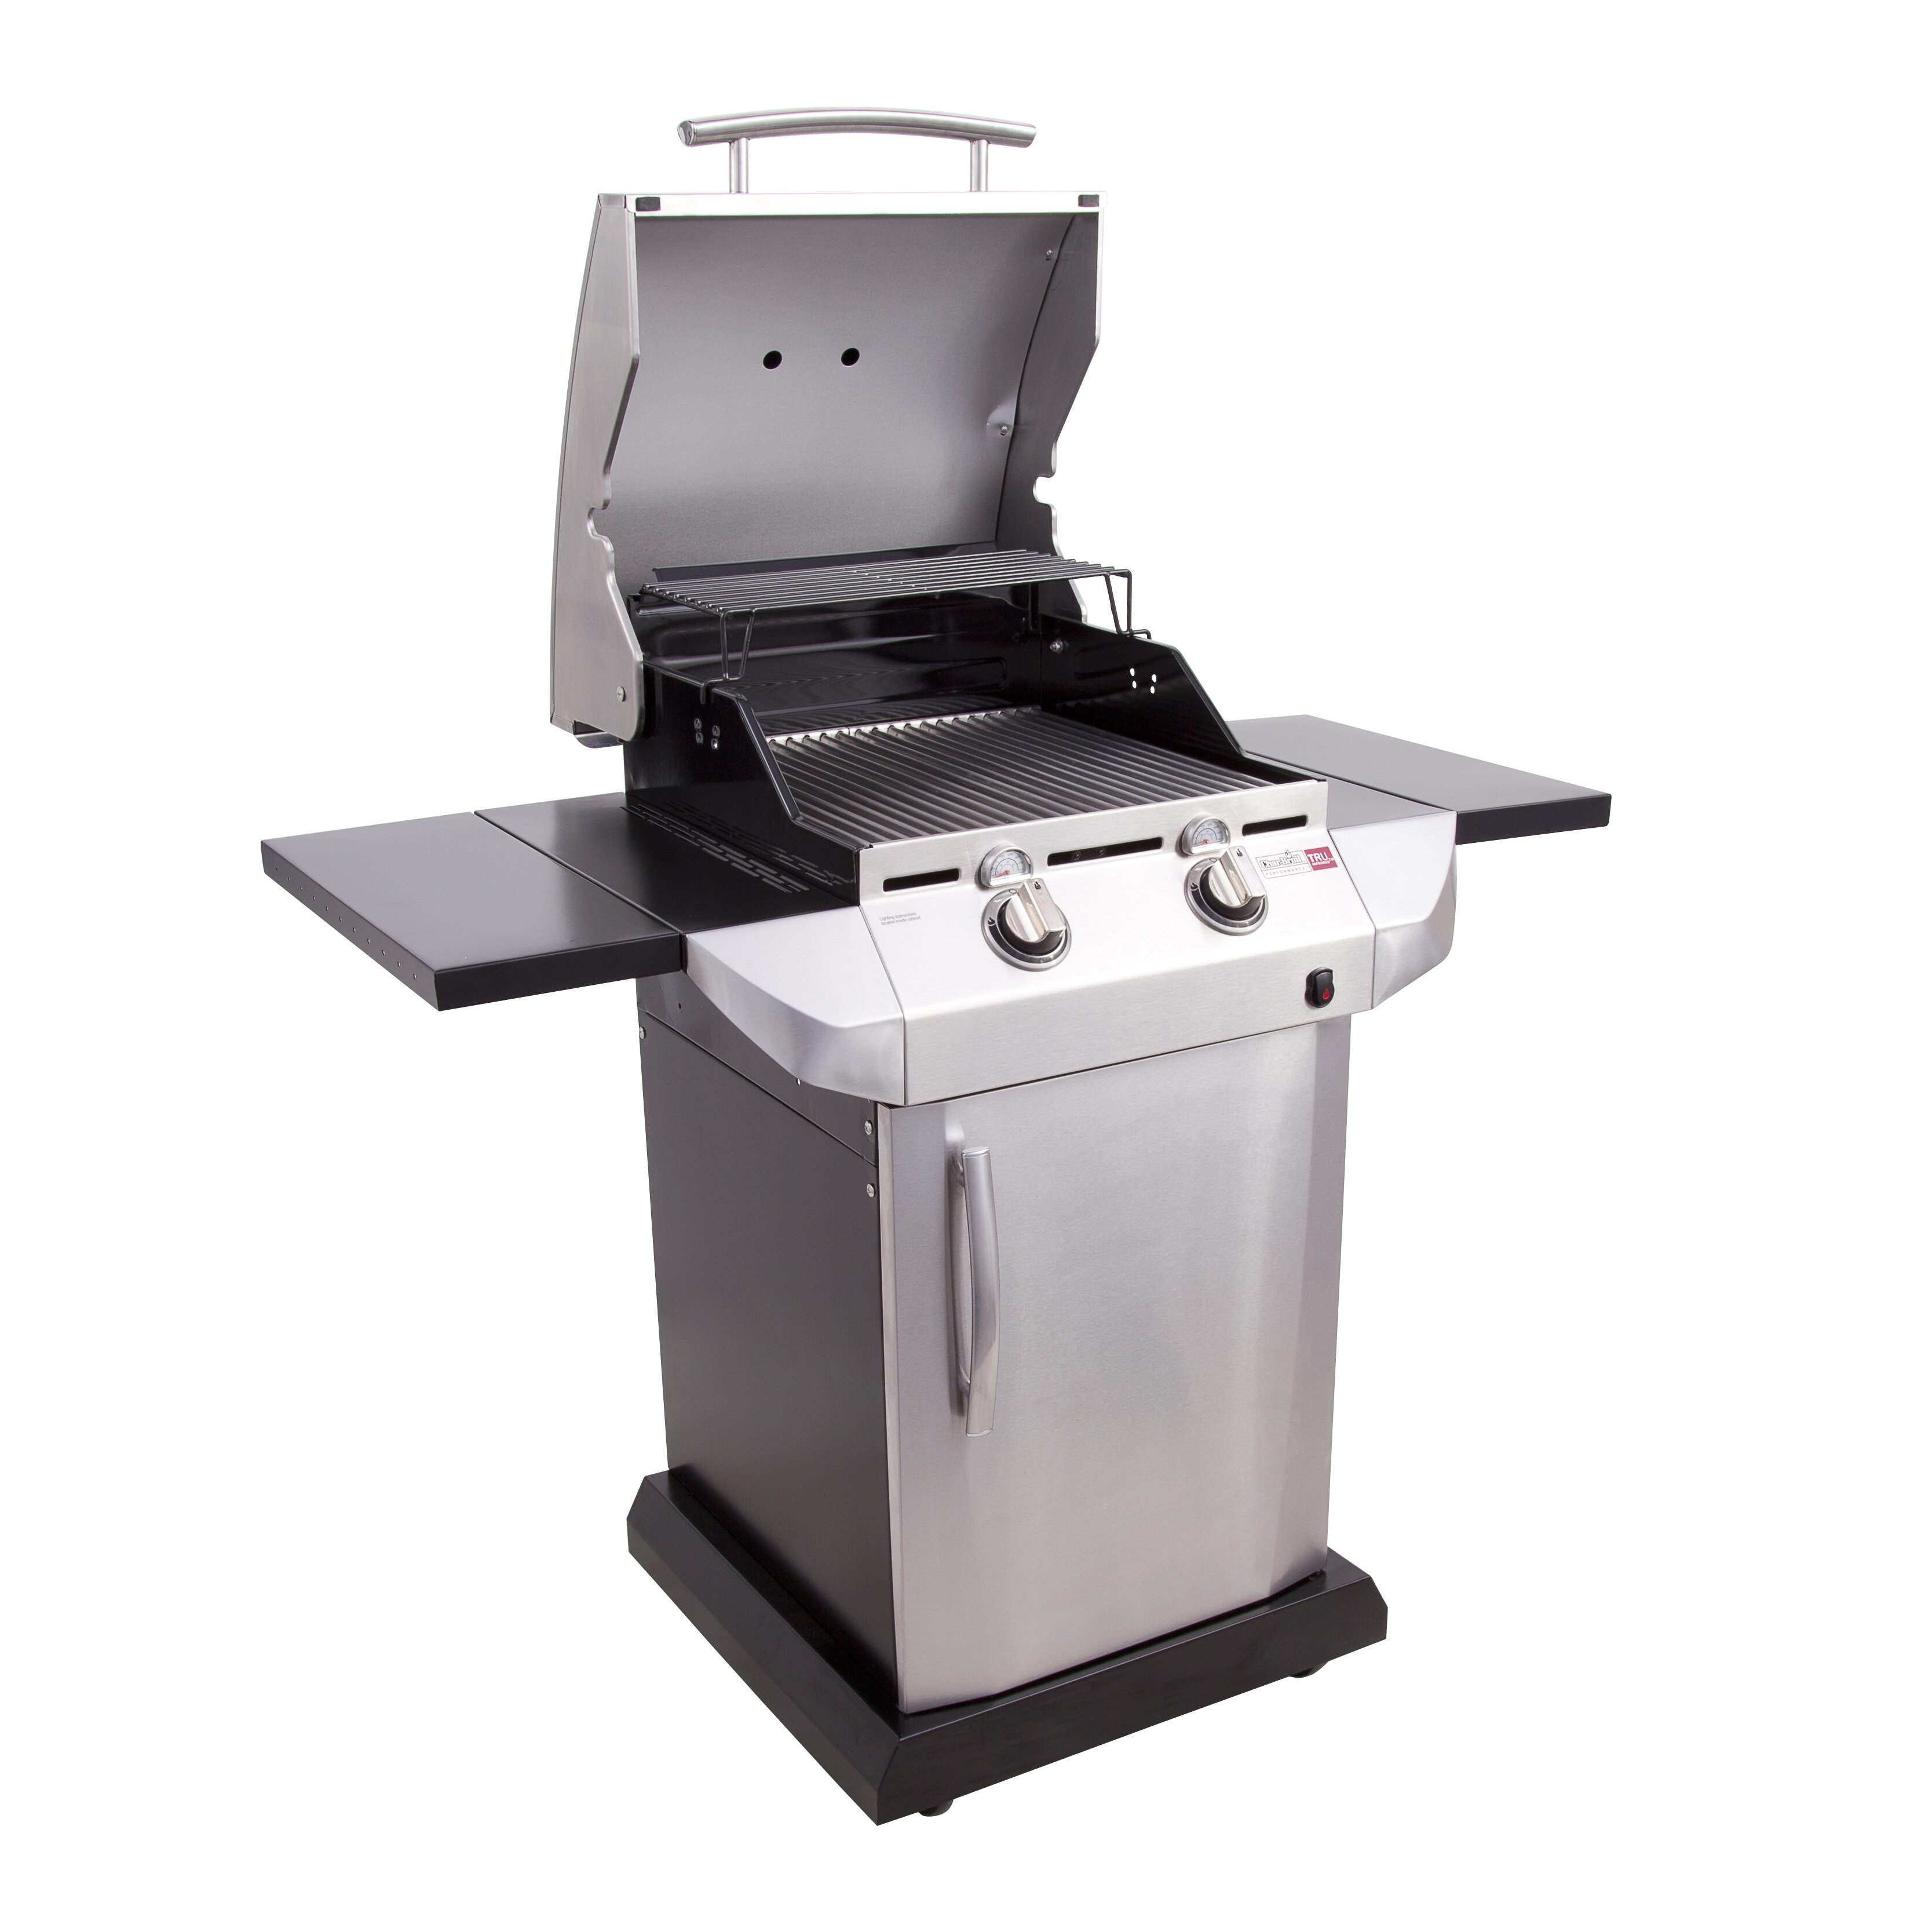 TRU-Infrared Performance 2 Burner Gas Grill with Storage ...